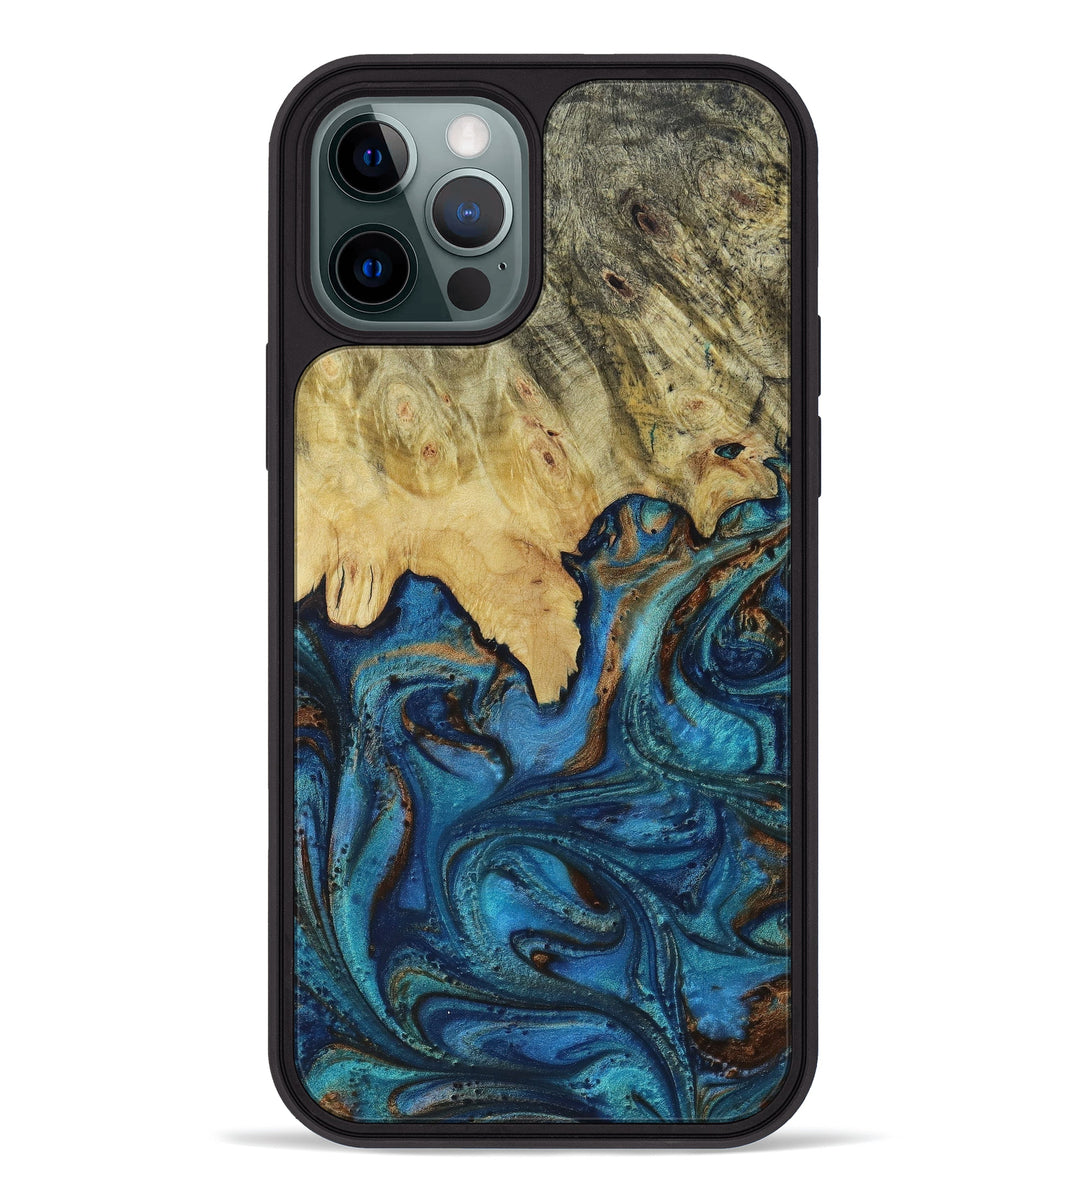 iPhone 12 Pro Wood+Resin Phone Case - Sage (Teal & Gold, 396062)